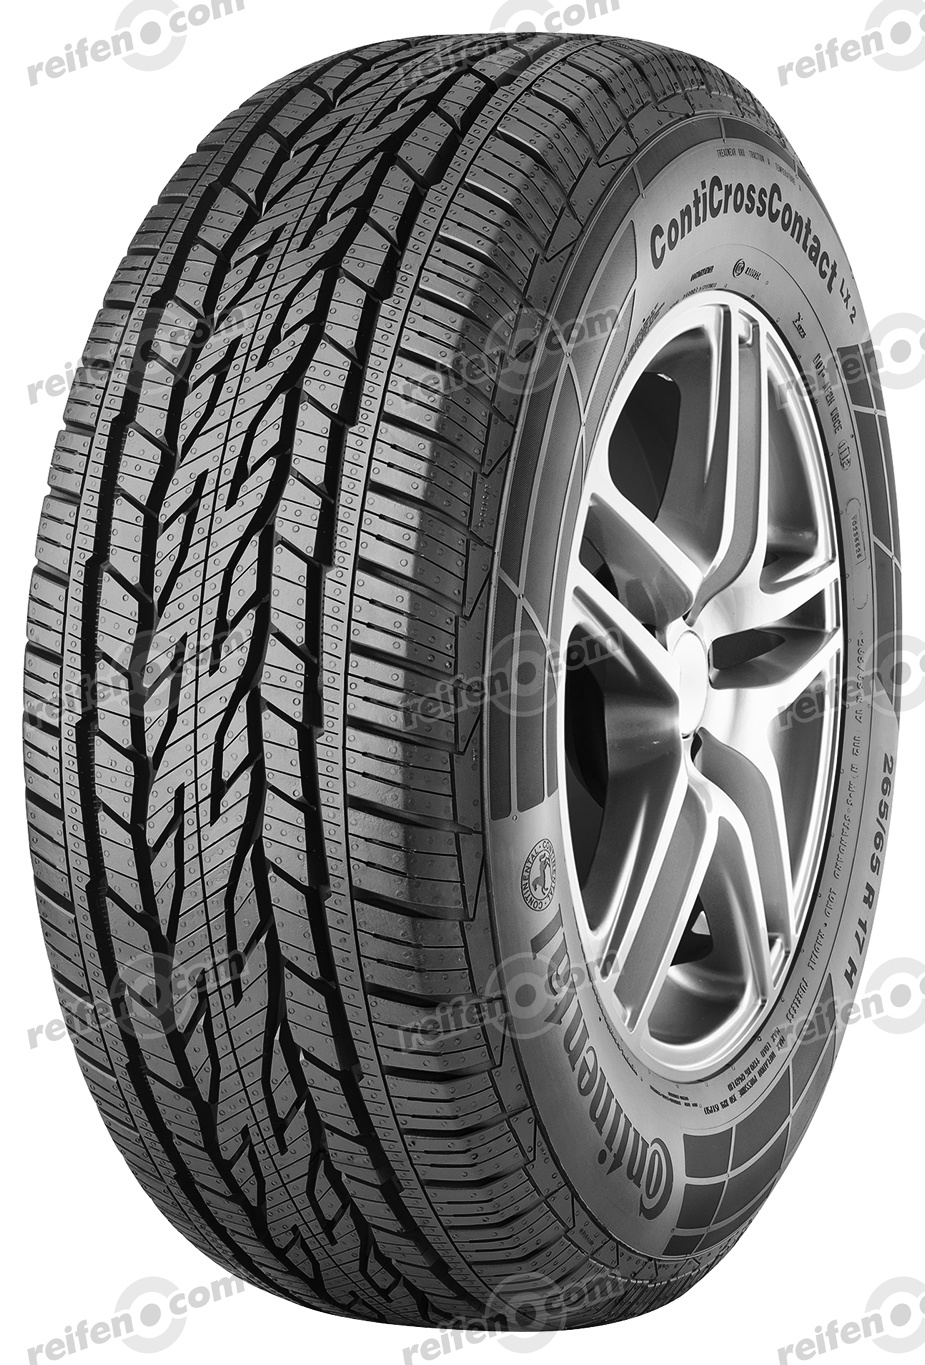 235/65 R17 108H CrossContact  LX 2 XL FR BSW  CrossContact  LX 2 XL FR BSW